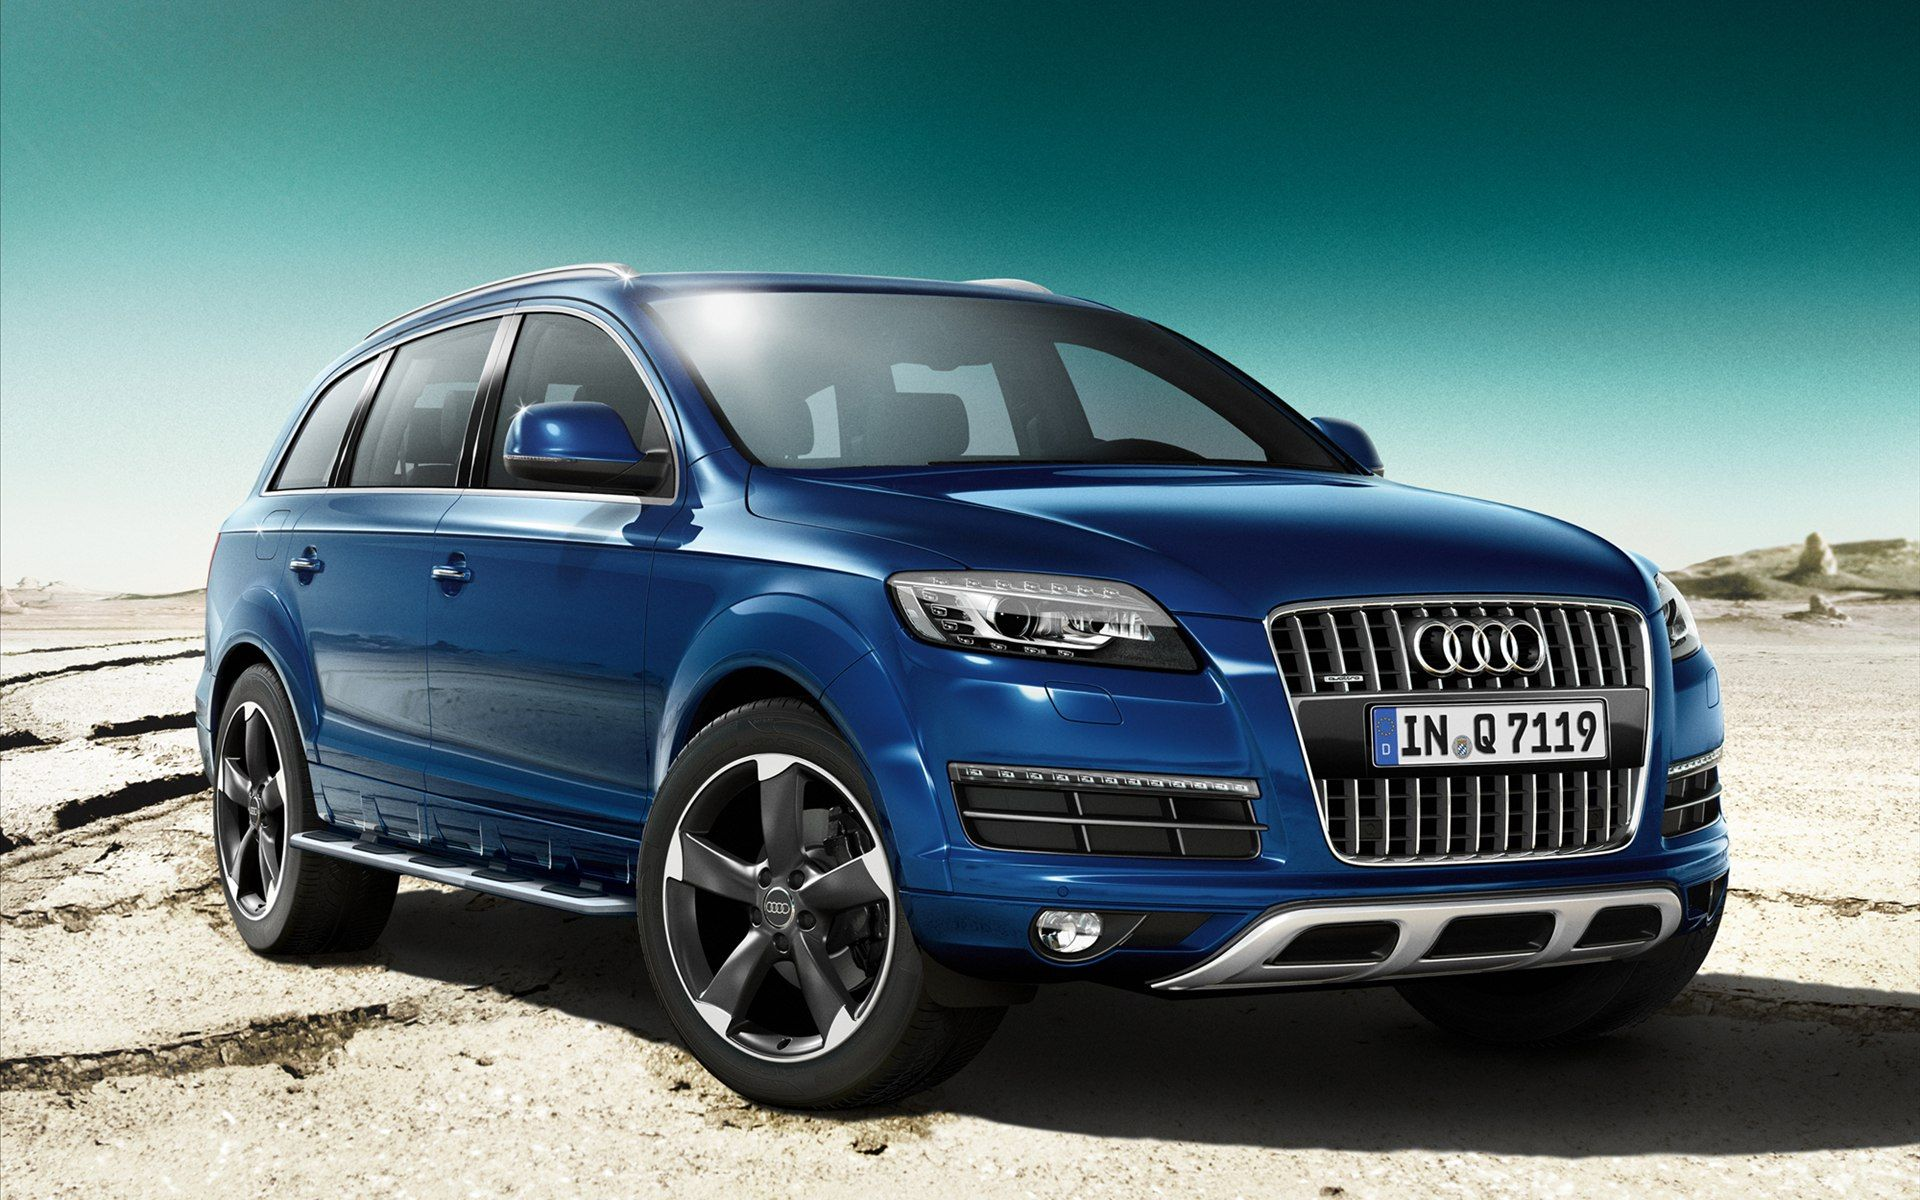 Audi Q7 S 2014 Widescreen Exotic Car Wallpapers of 4 : Diesel